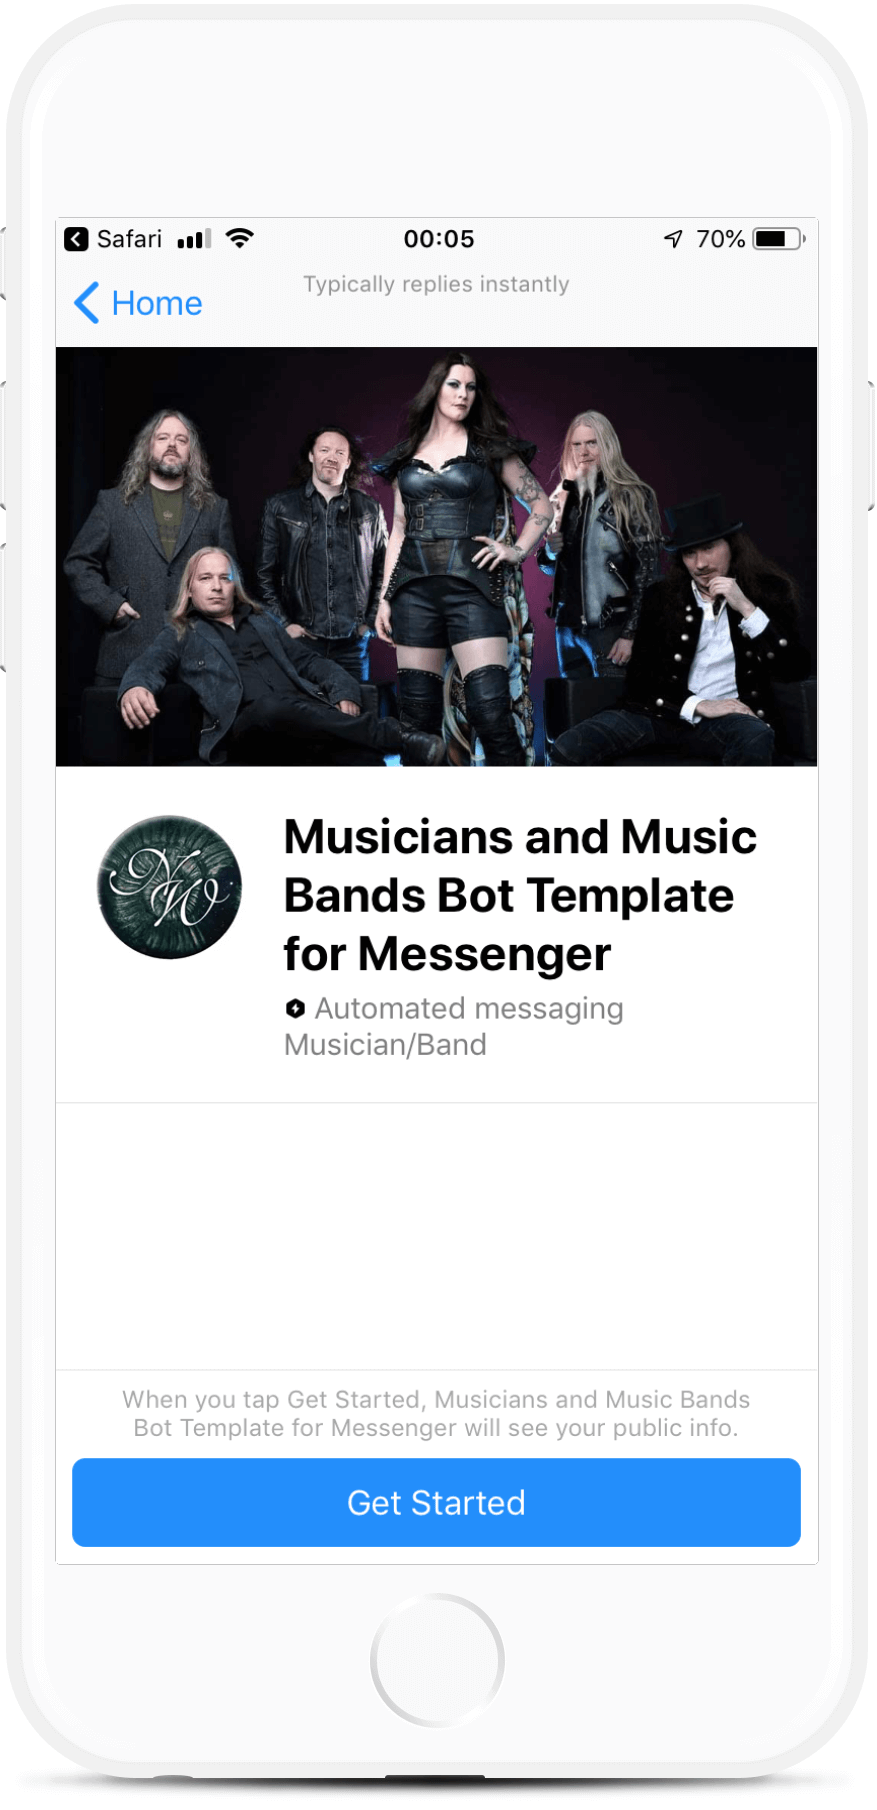 Musician and Music Band bot screenshot